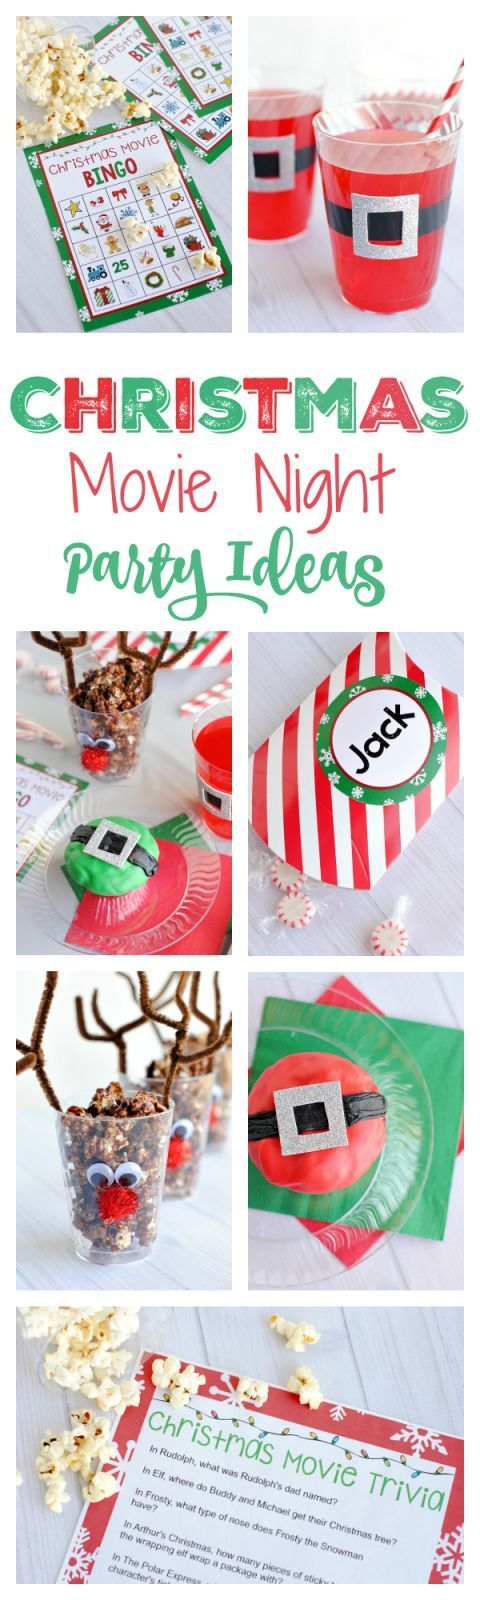 christmas movie night party ideas games treats favors and more